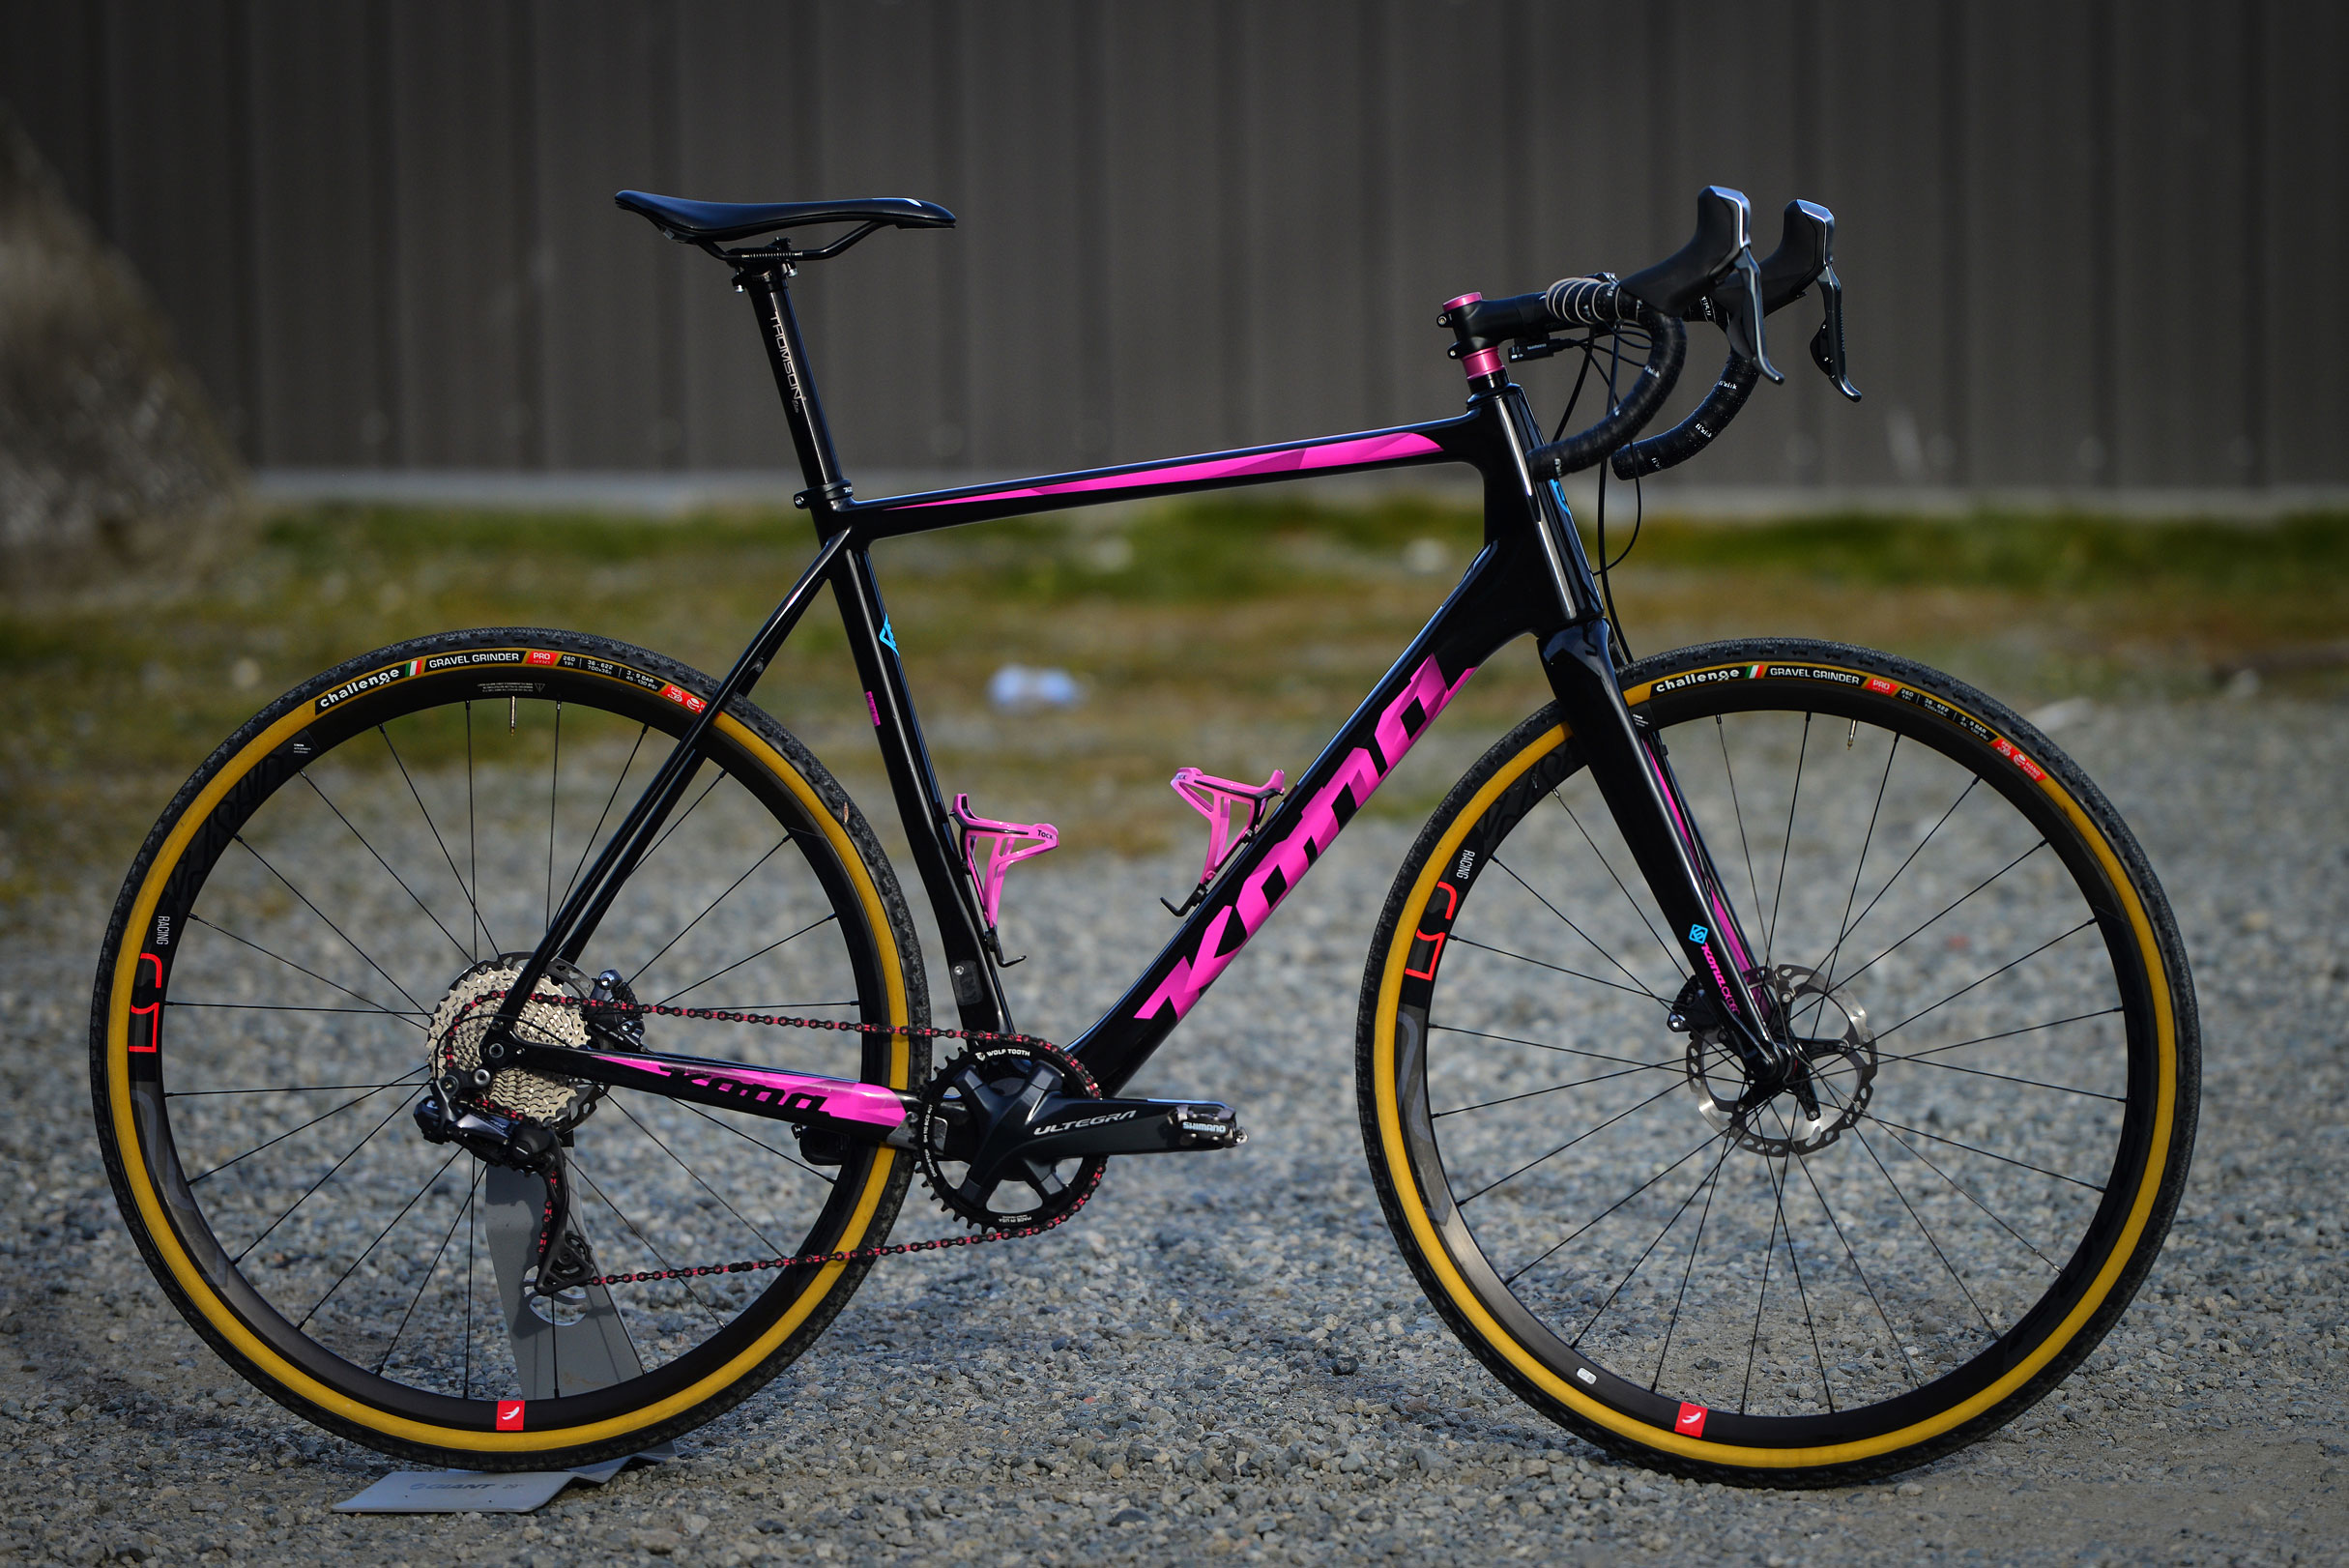 Kona Dream Builds: Pretty in Pink – Chad's Custom Super Jake